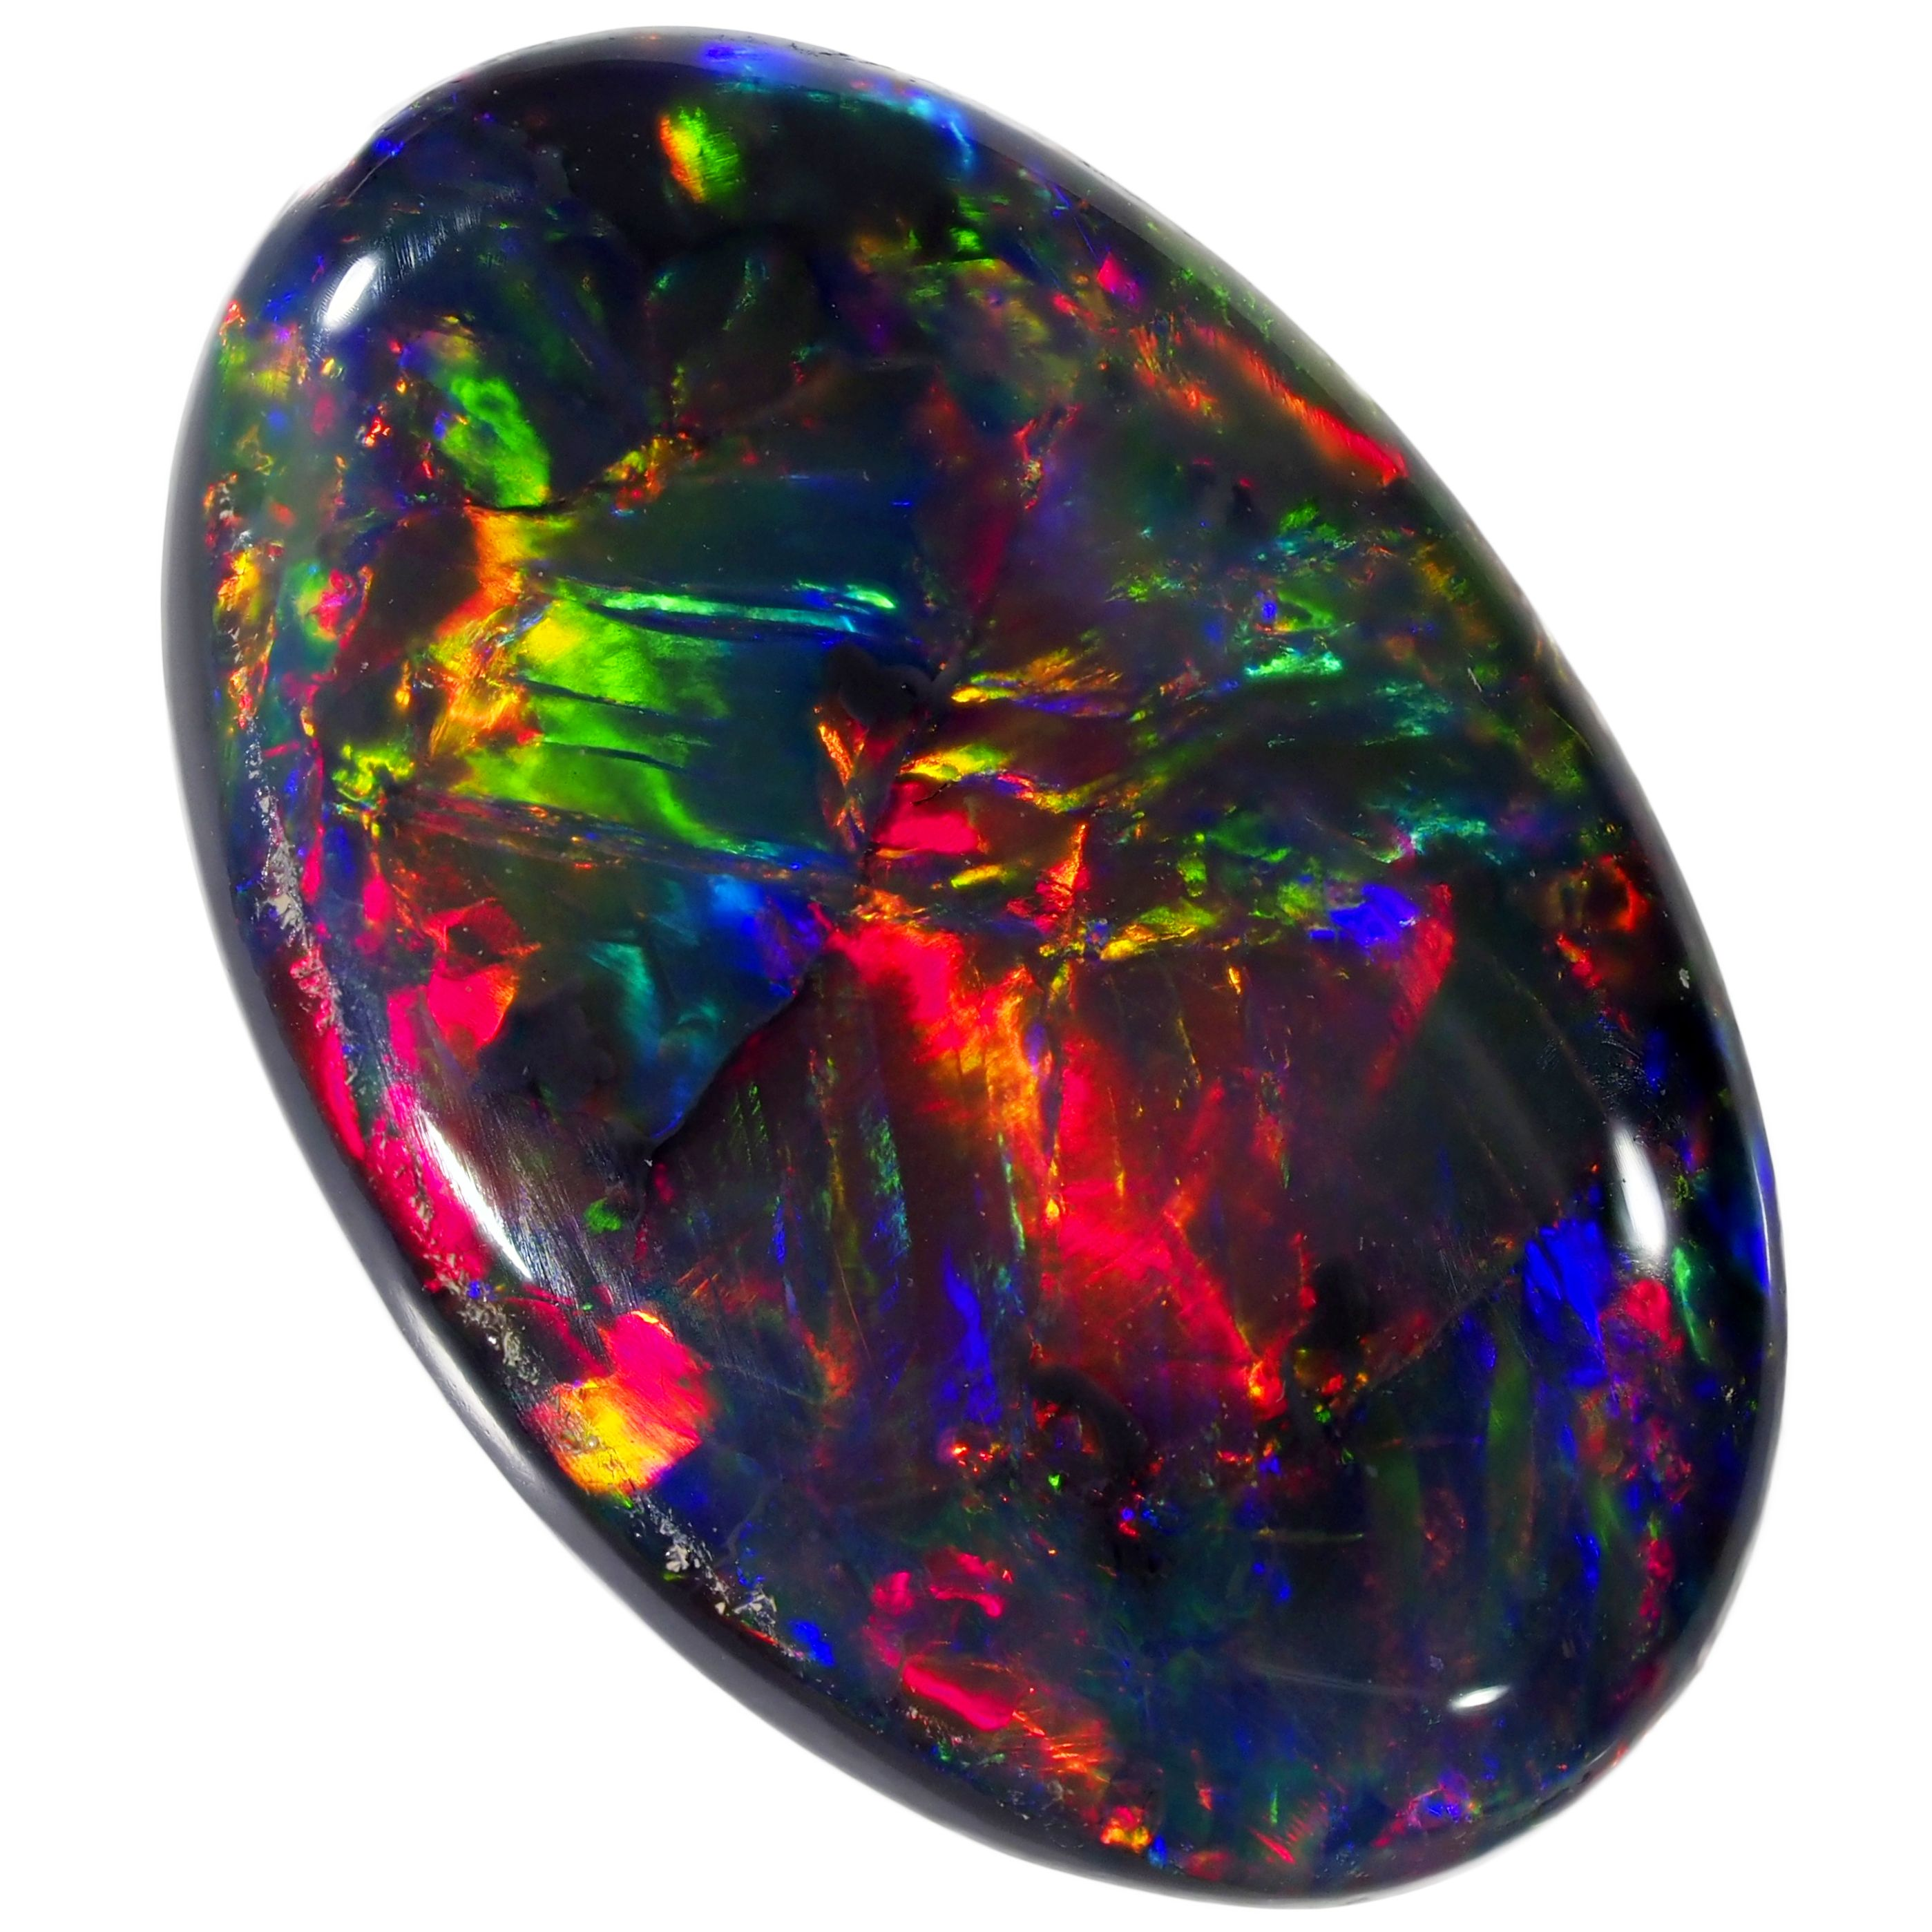 Black Opal Ideal For Ring Stone Black Opals By Seda